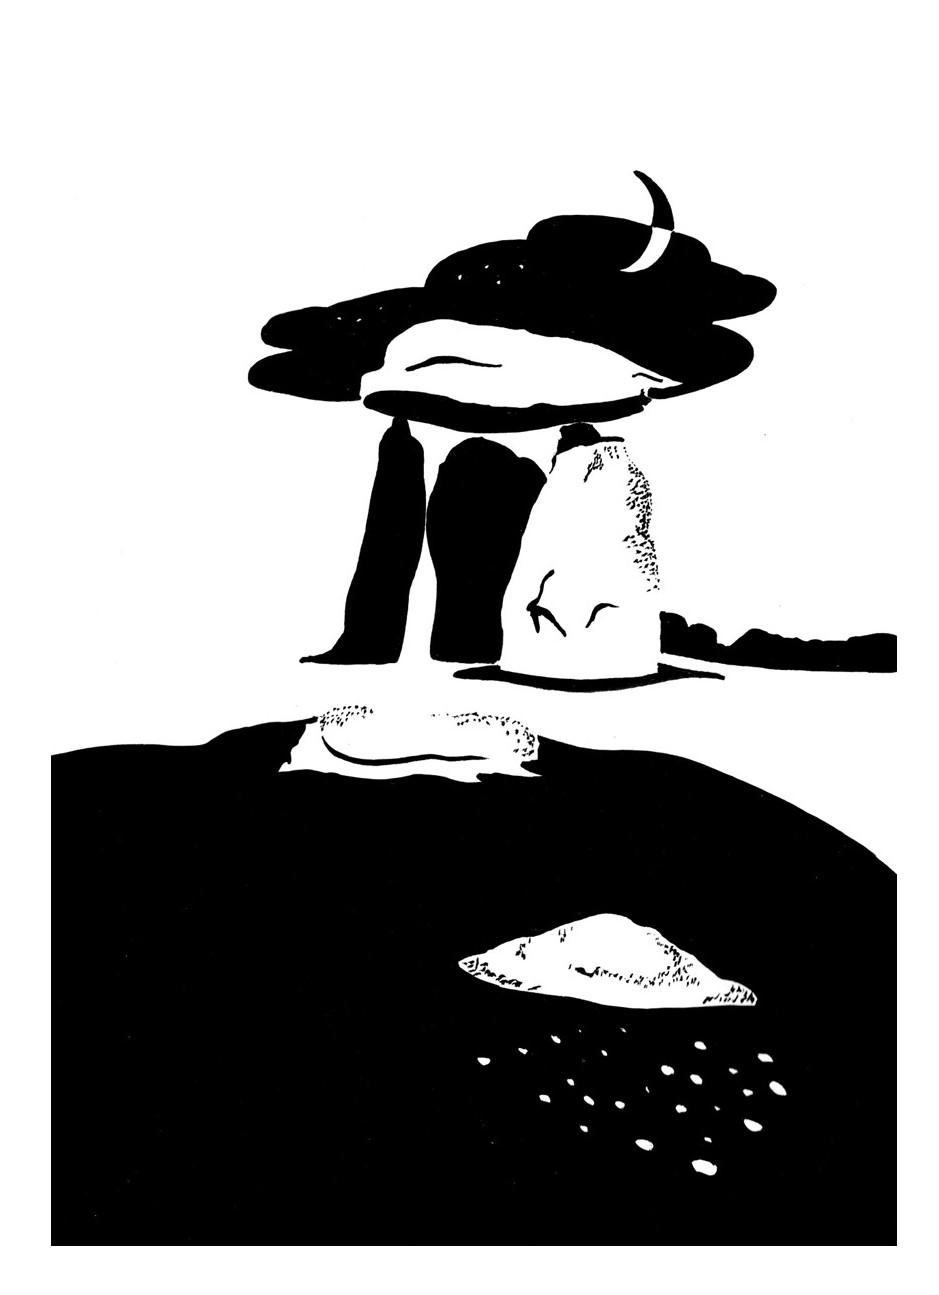 Black and white image of Stone Age cromlech